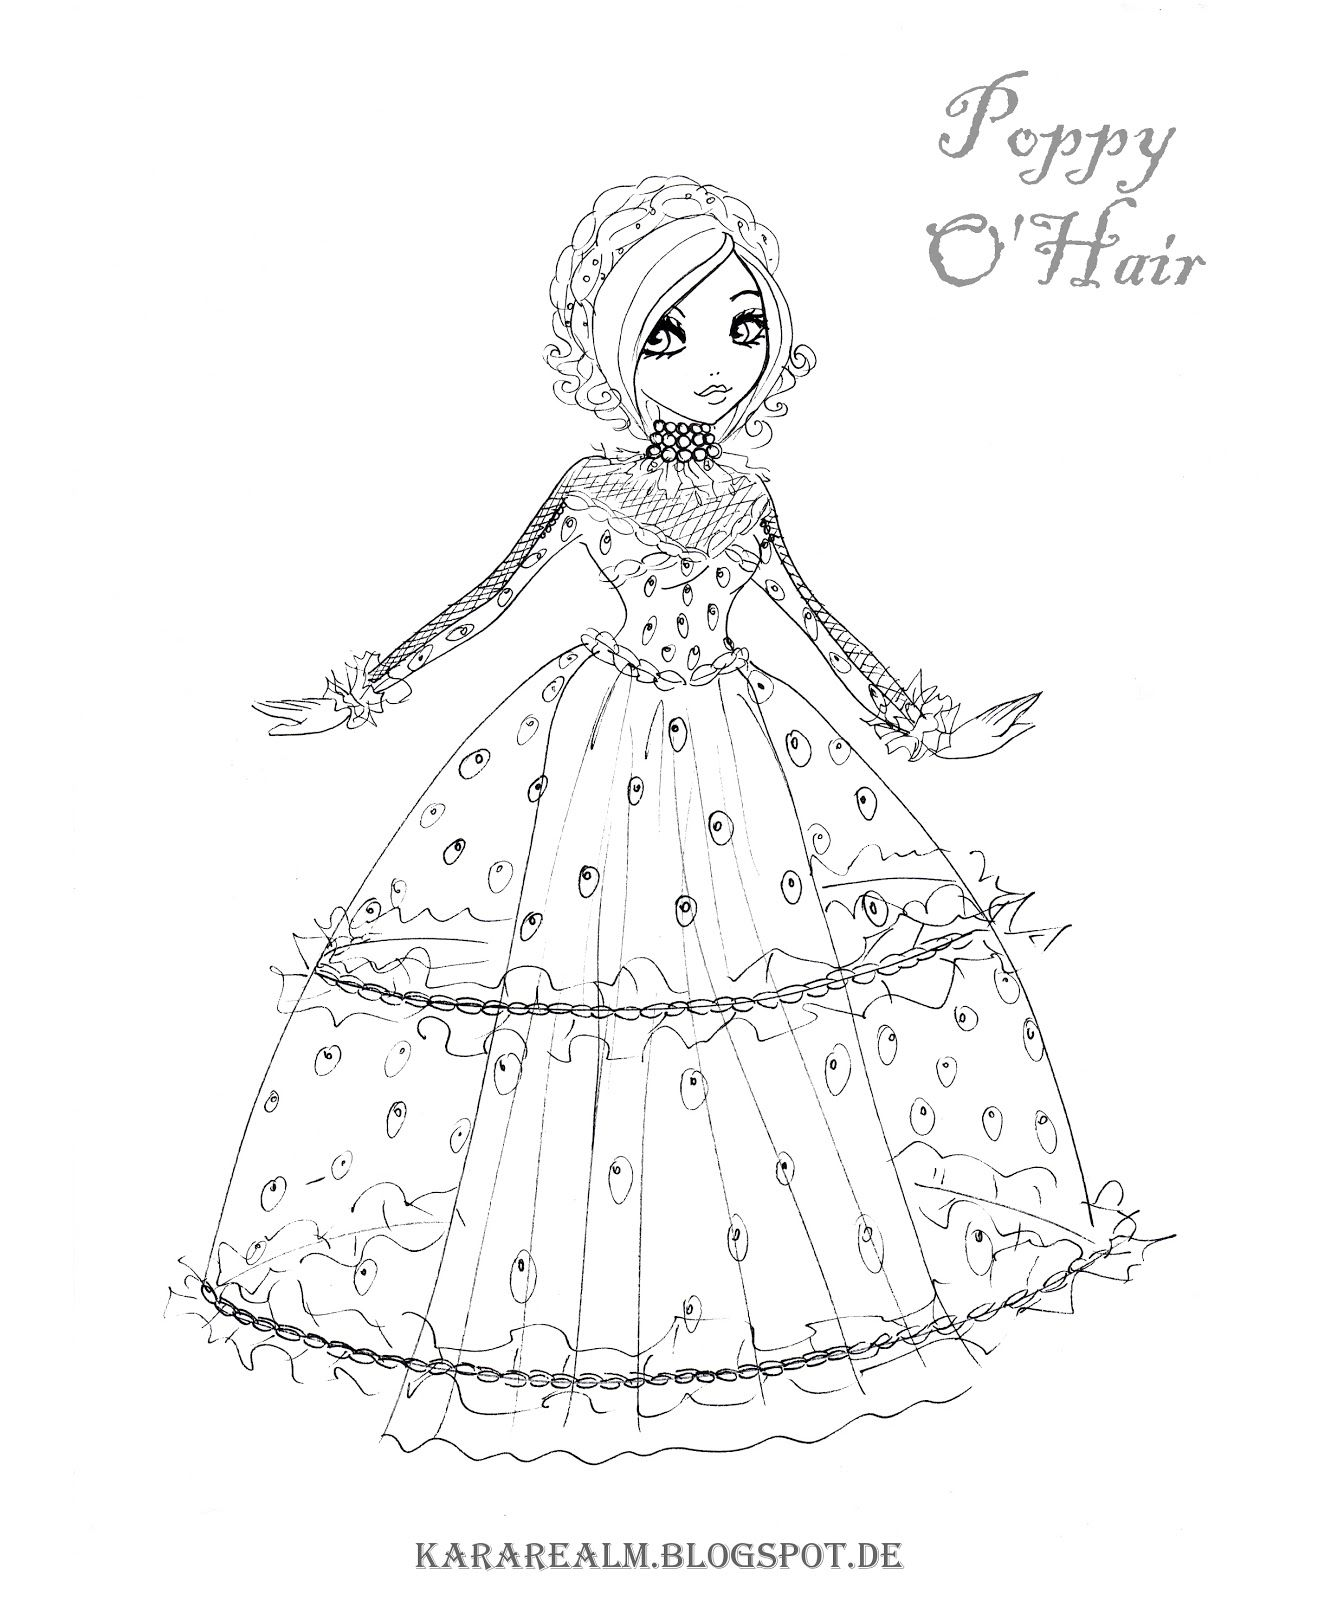 Kara Realm: Ever After High Coloring Pages | Coloring Pages ...